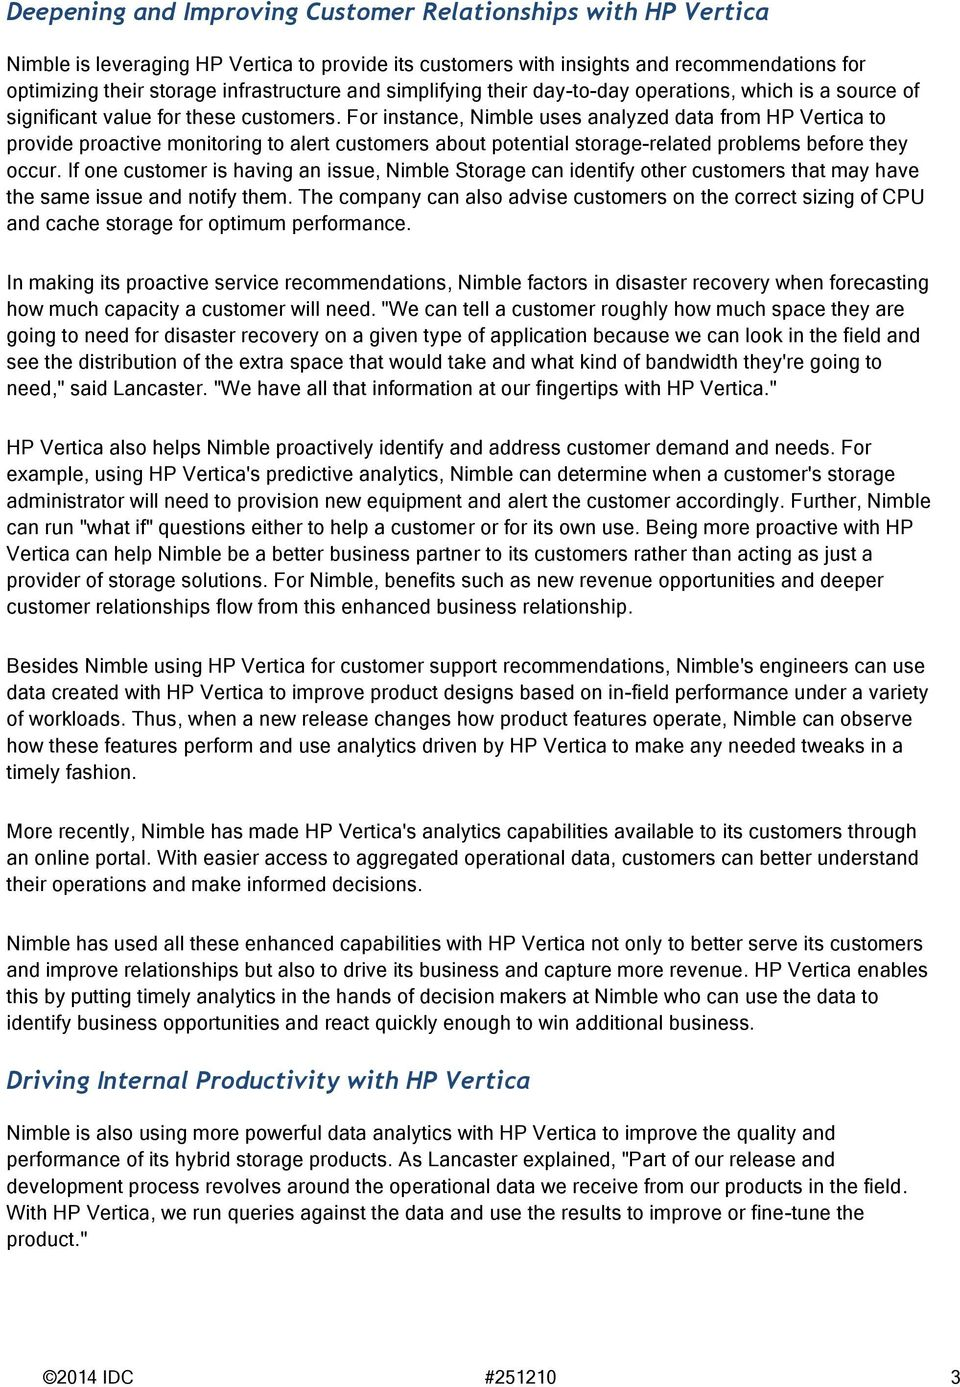 For instance, Nimble uses analyzed data from HP Vertica to provide proactive monitoring to alert customers about potential storage-related problems before they occur.